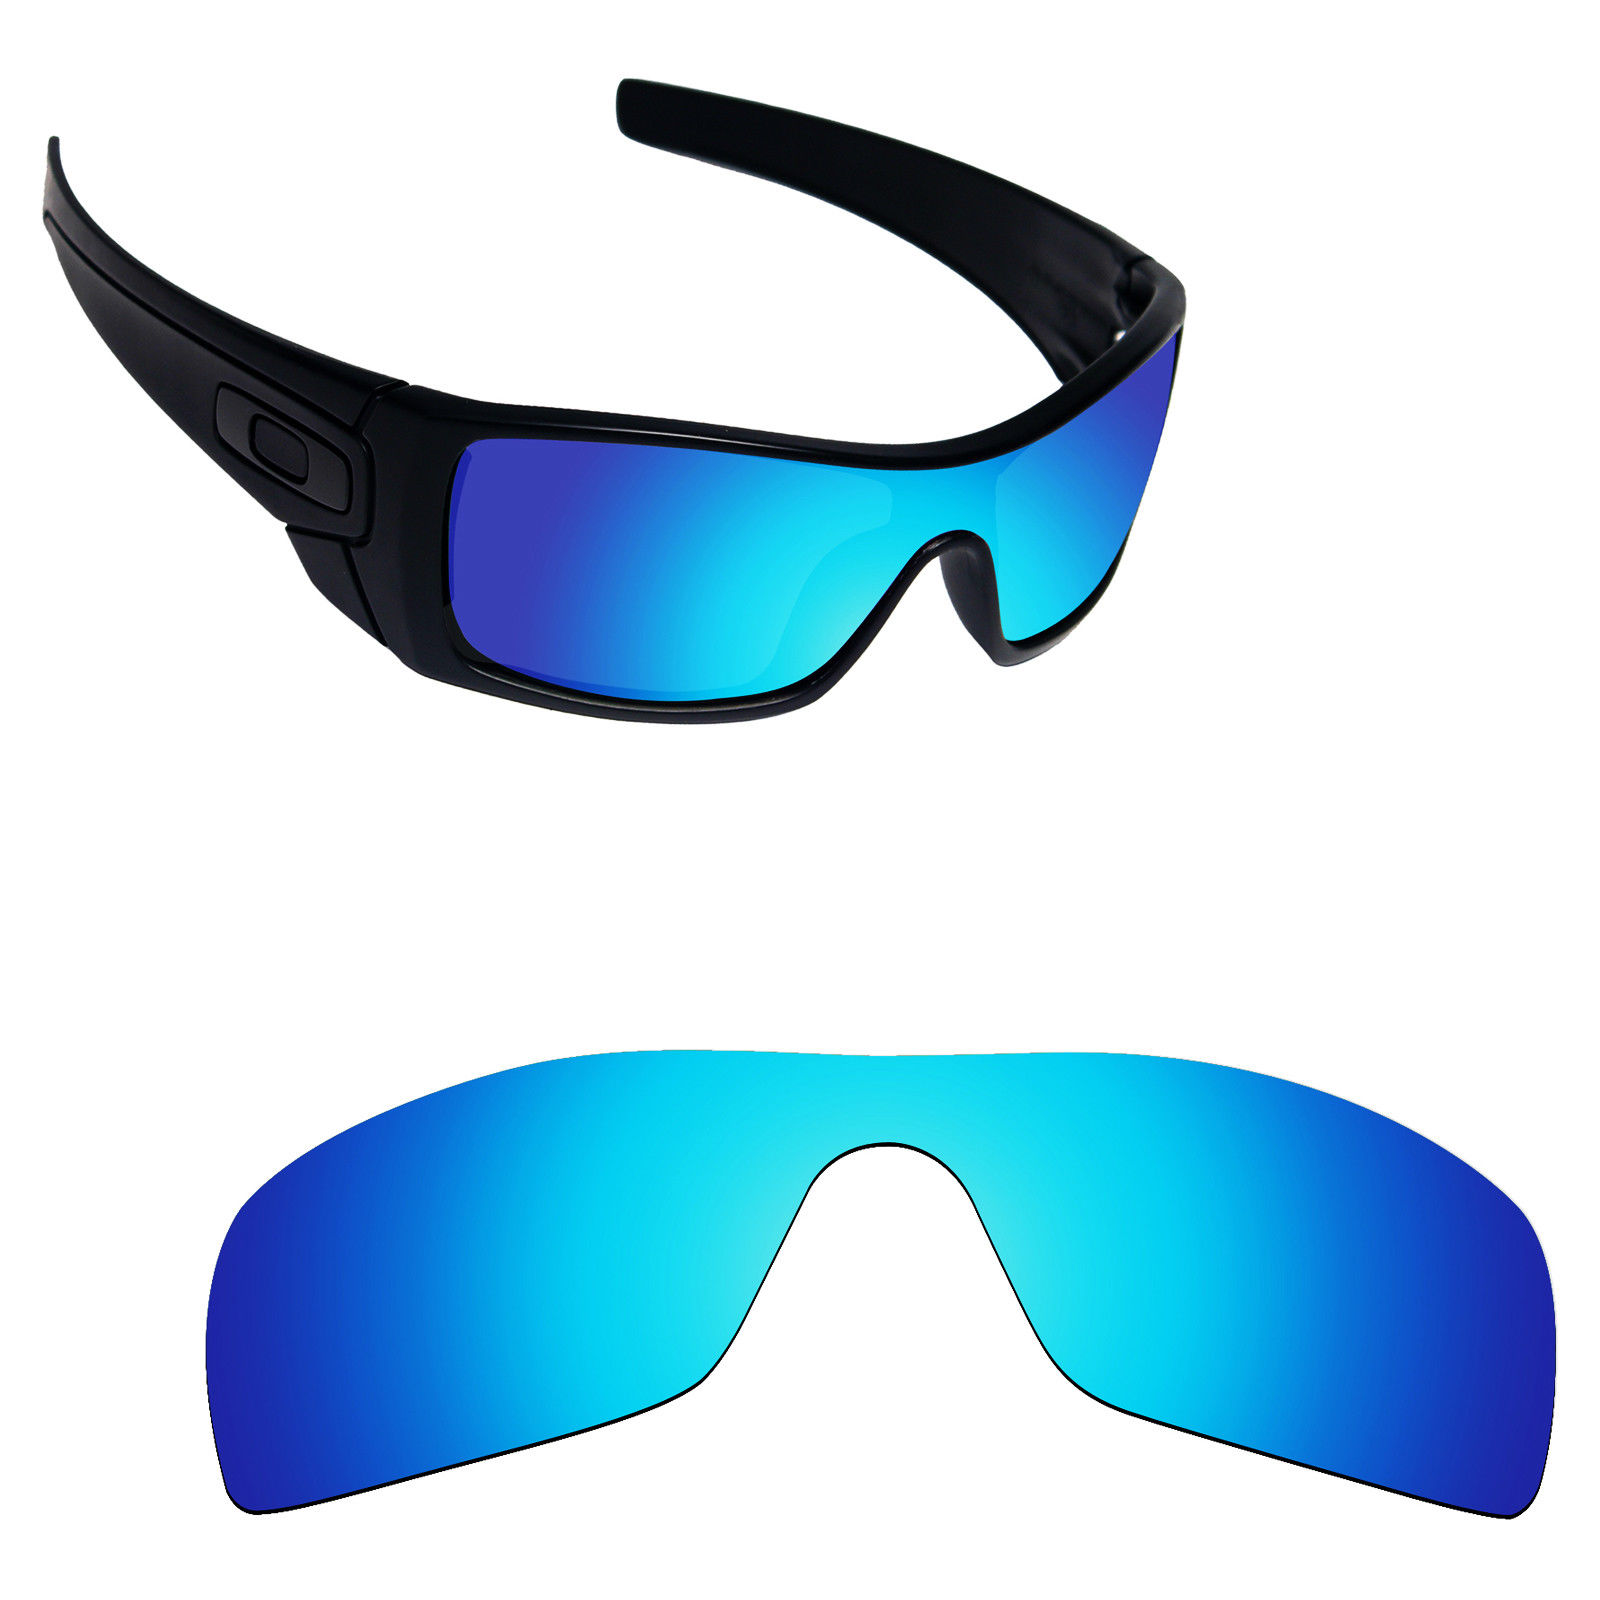 083aca82be Polarized Mirrored Replacement Lenses For Oakley Batwolf Sunglasses ...